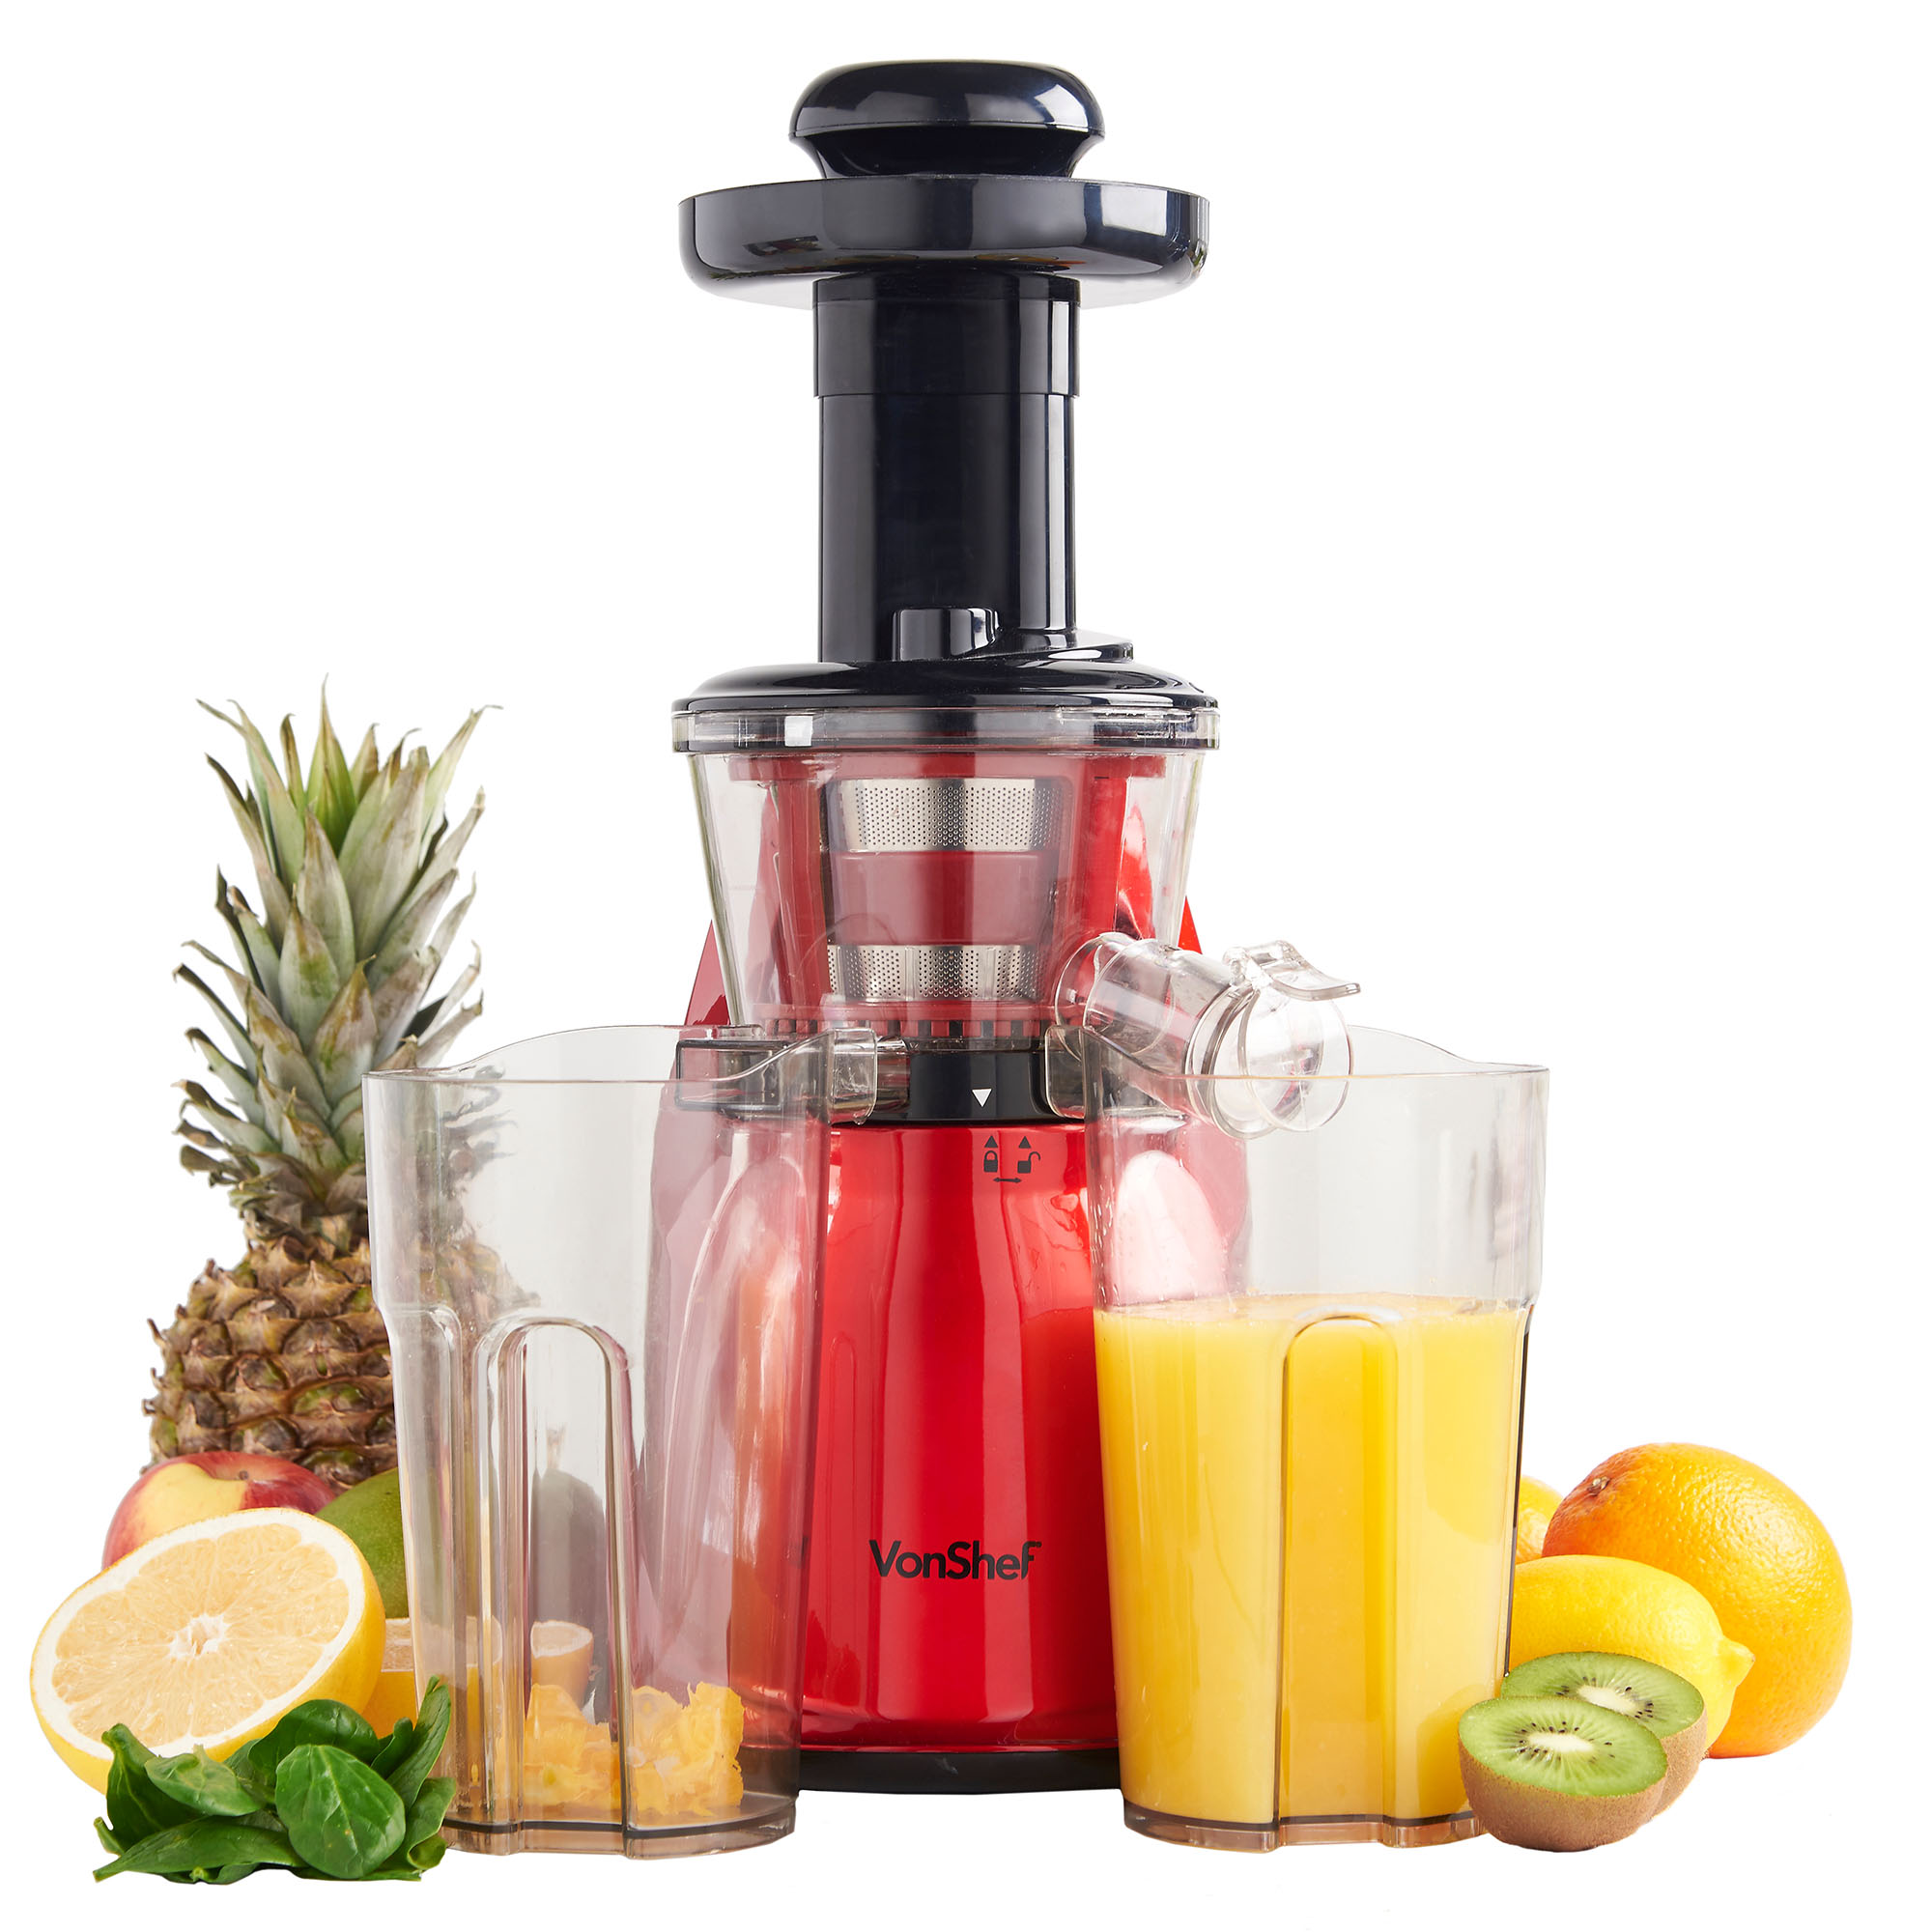 Best Slow Extraction Juicer : vonShef Premium Slow Masticating Juicer Electric vegetable Juice Extractor - Red eBay